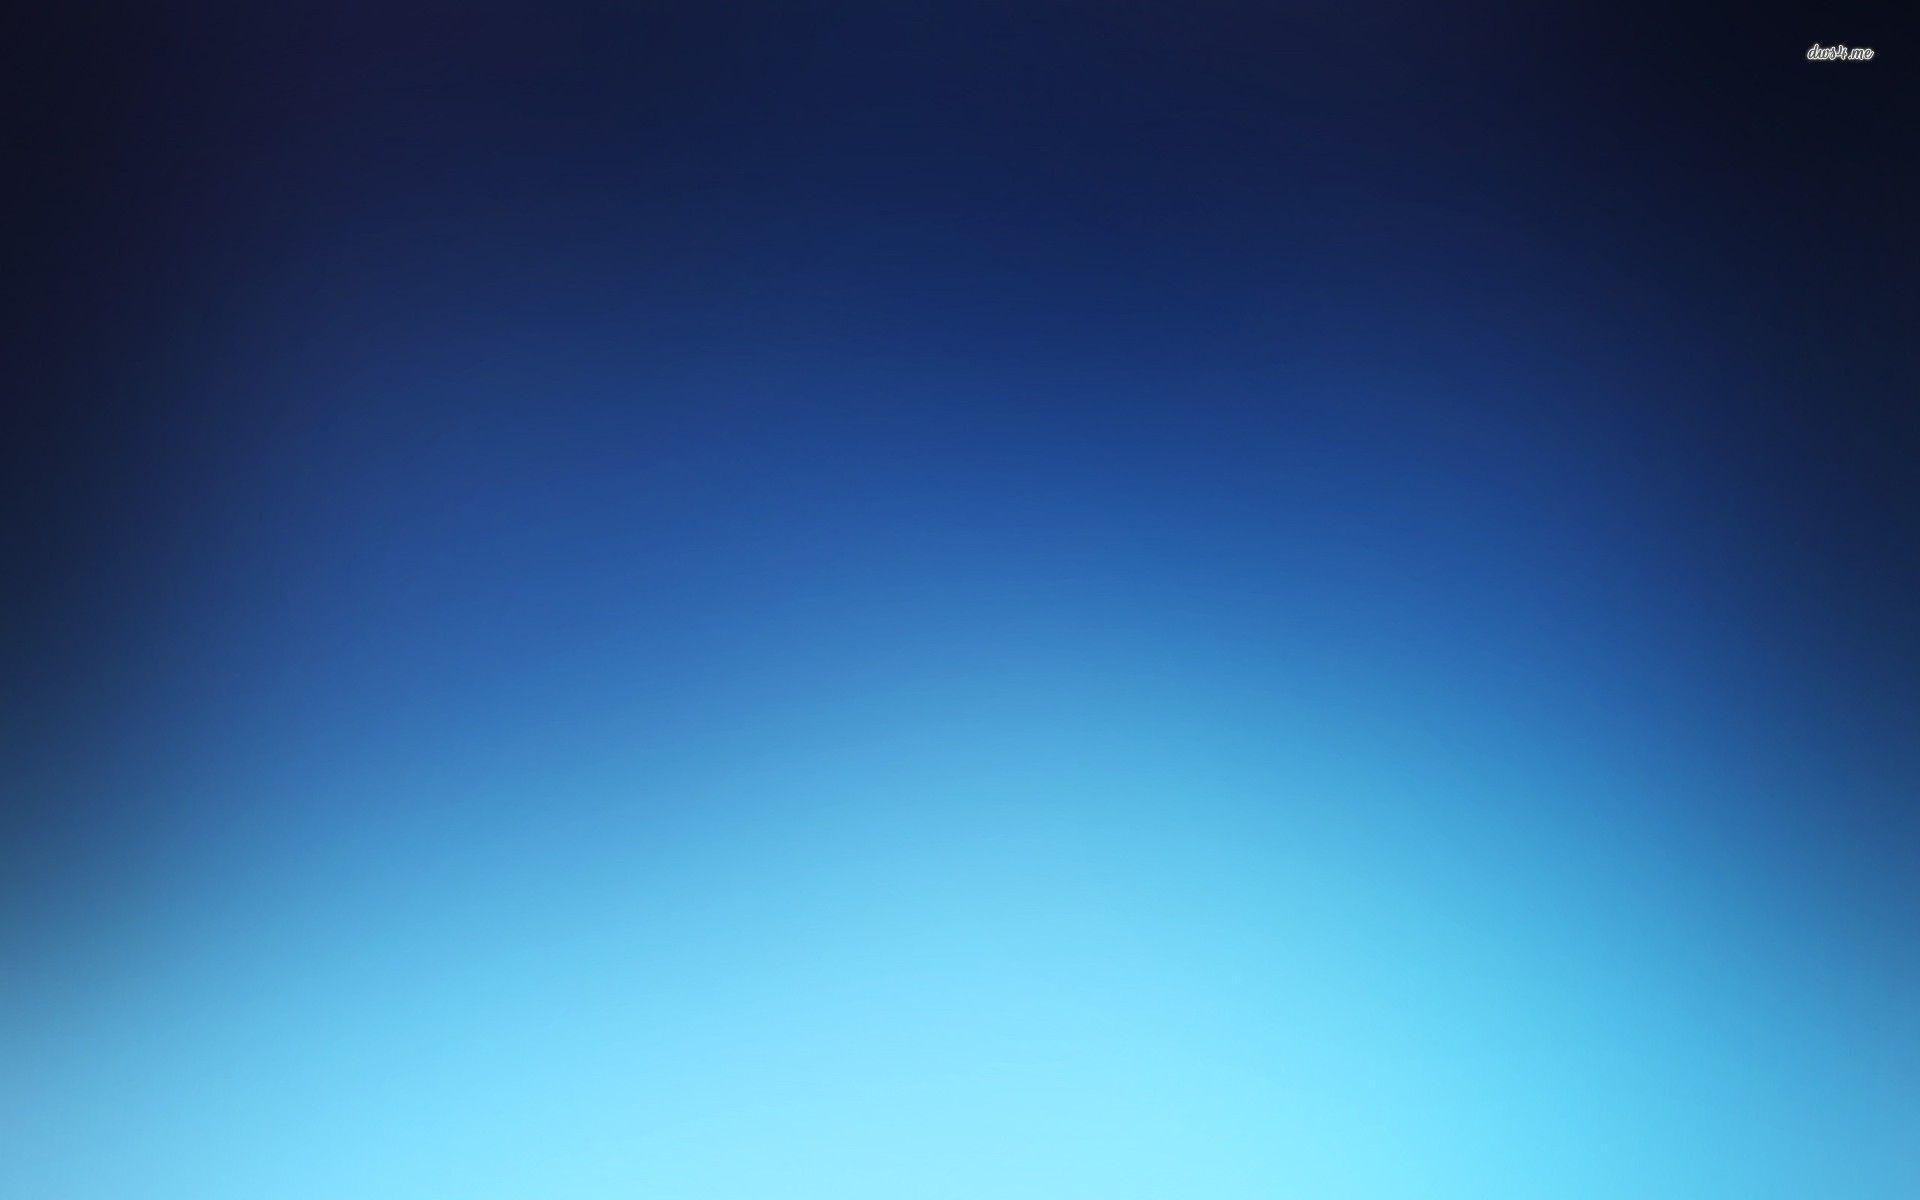 wallpaper background gradient blue - photo #49